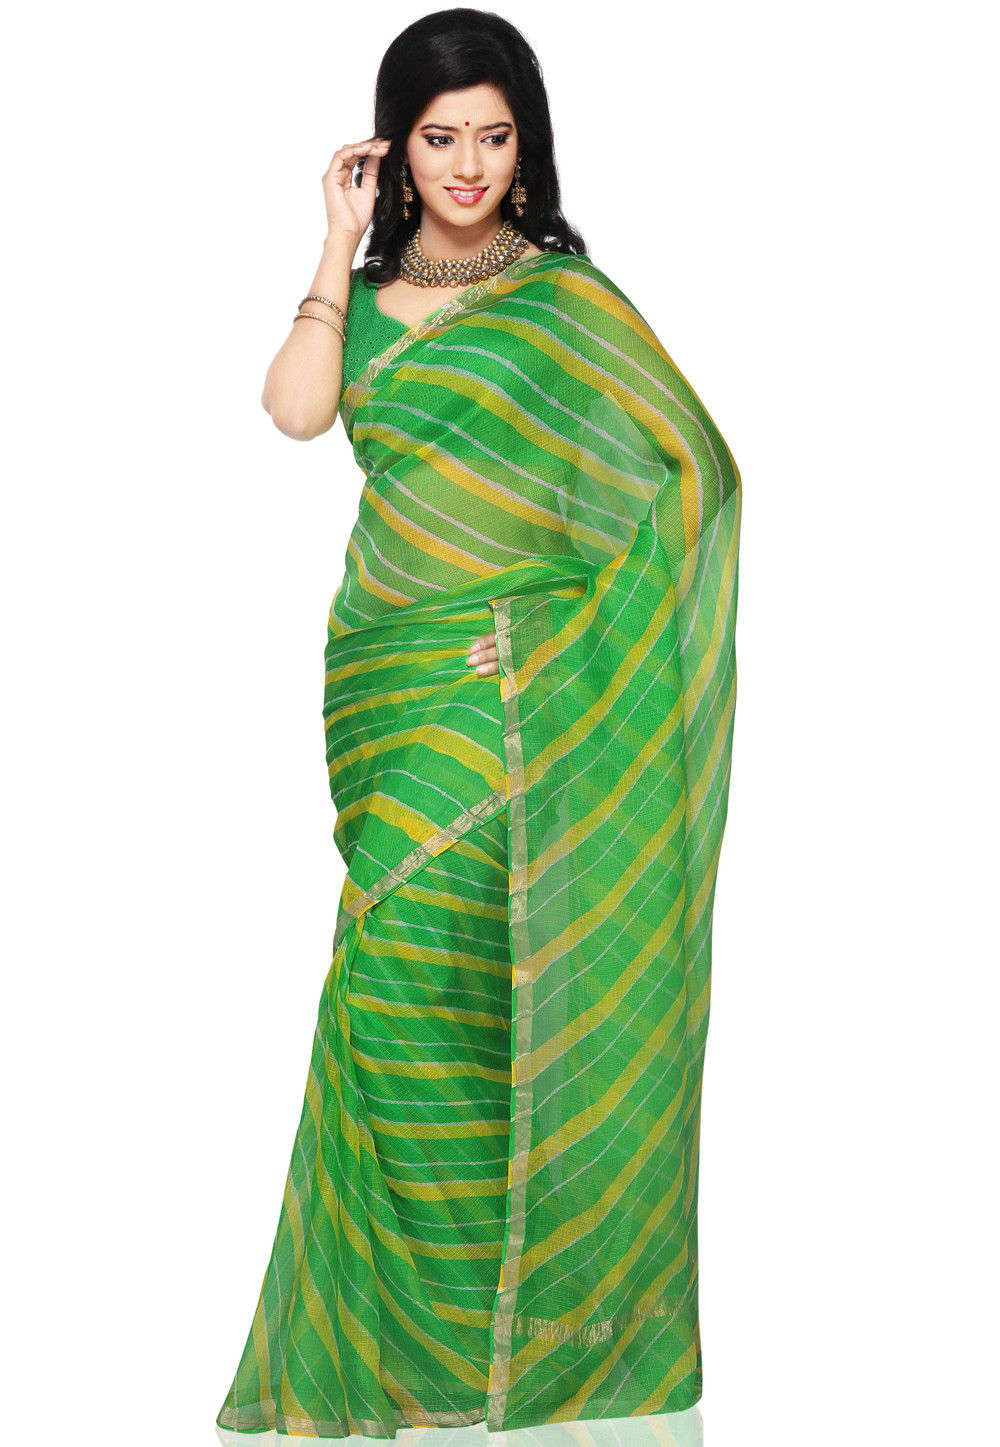 Leheriya Printed Pure Kota Silk Saree in Green and Yellow